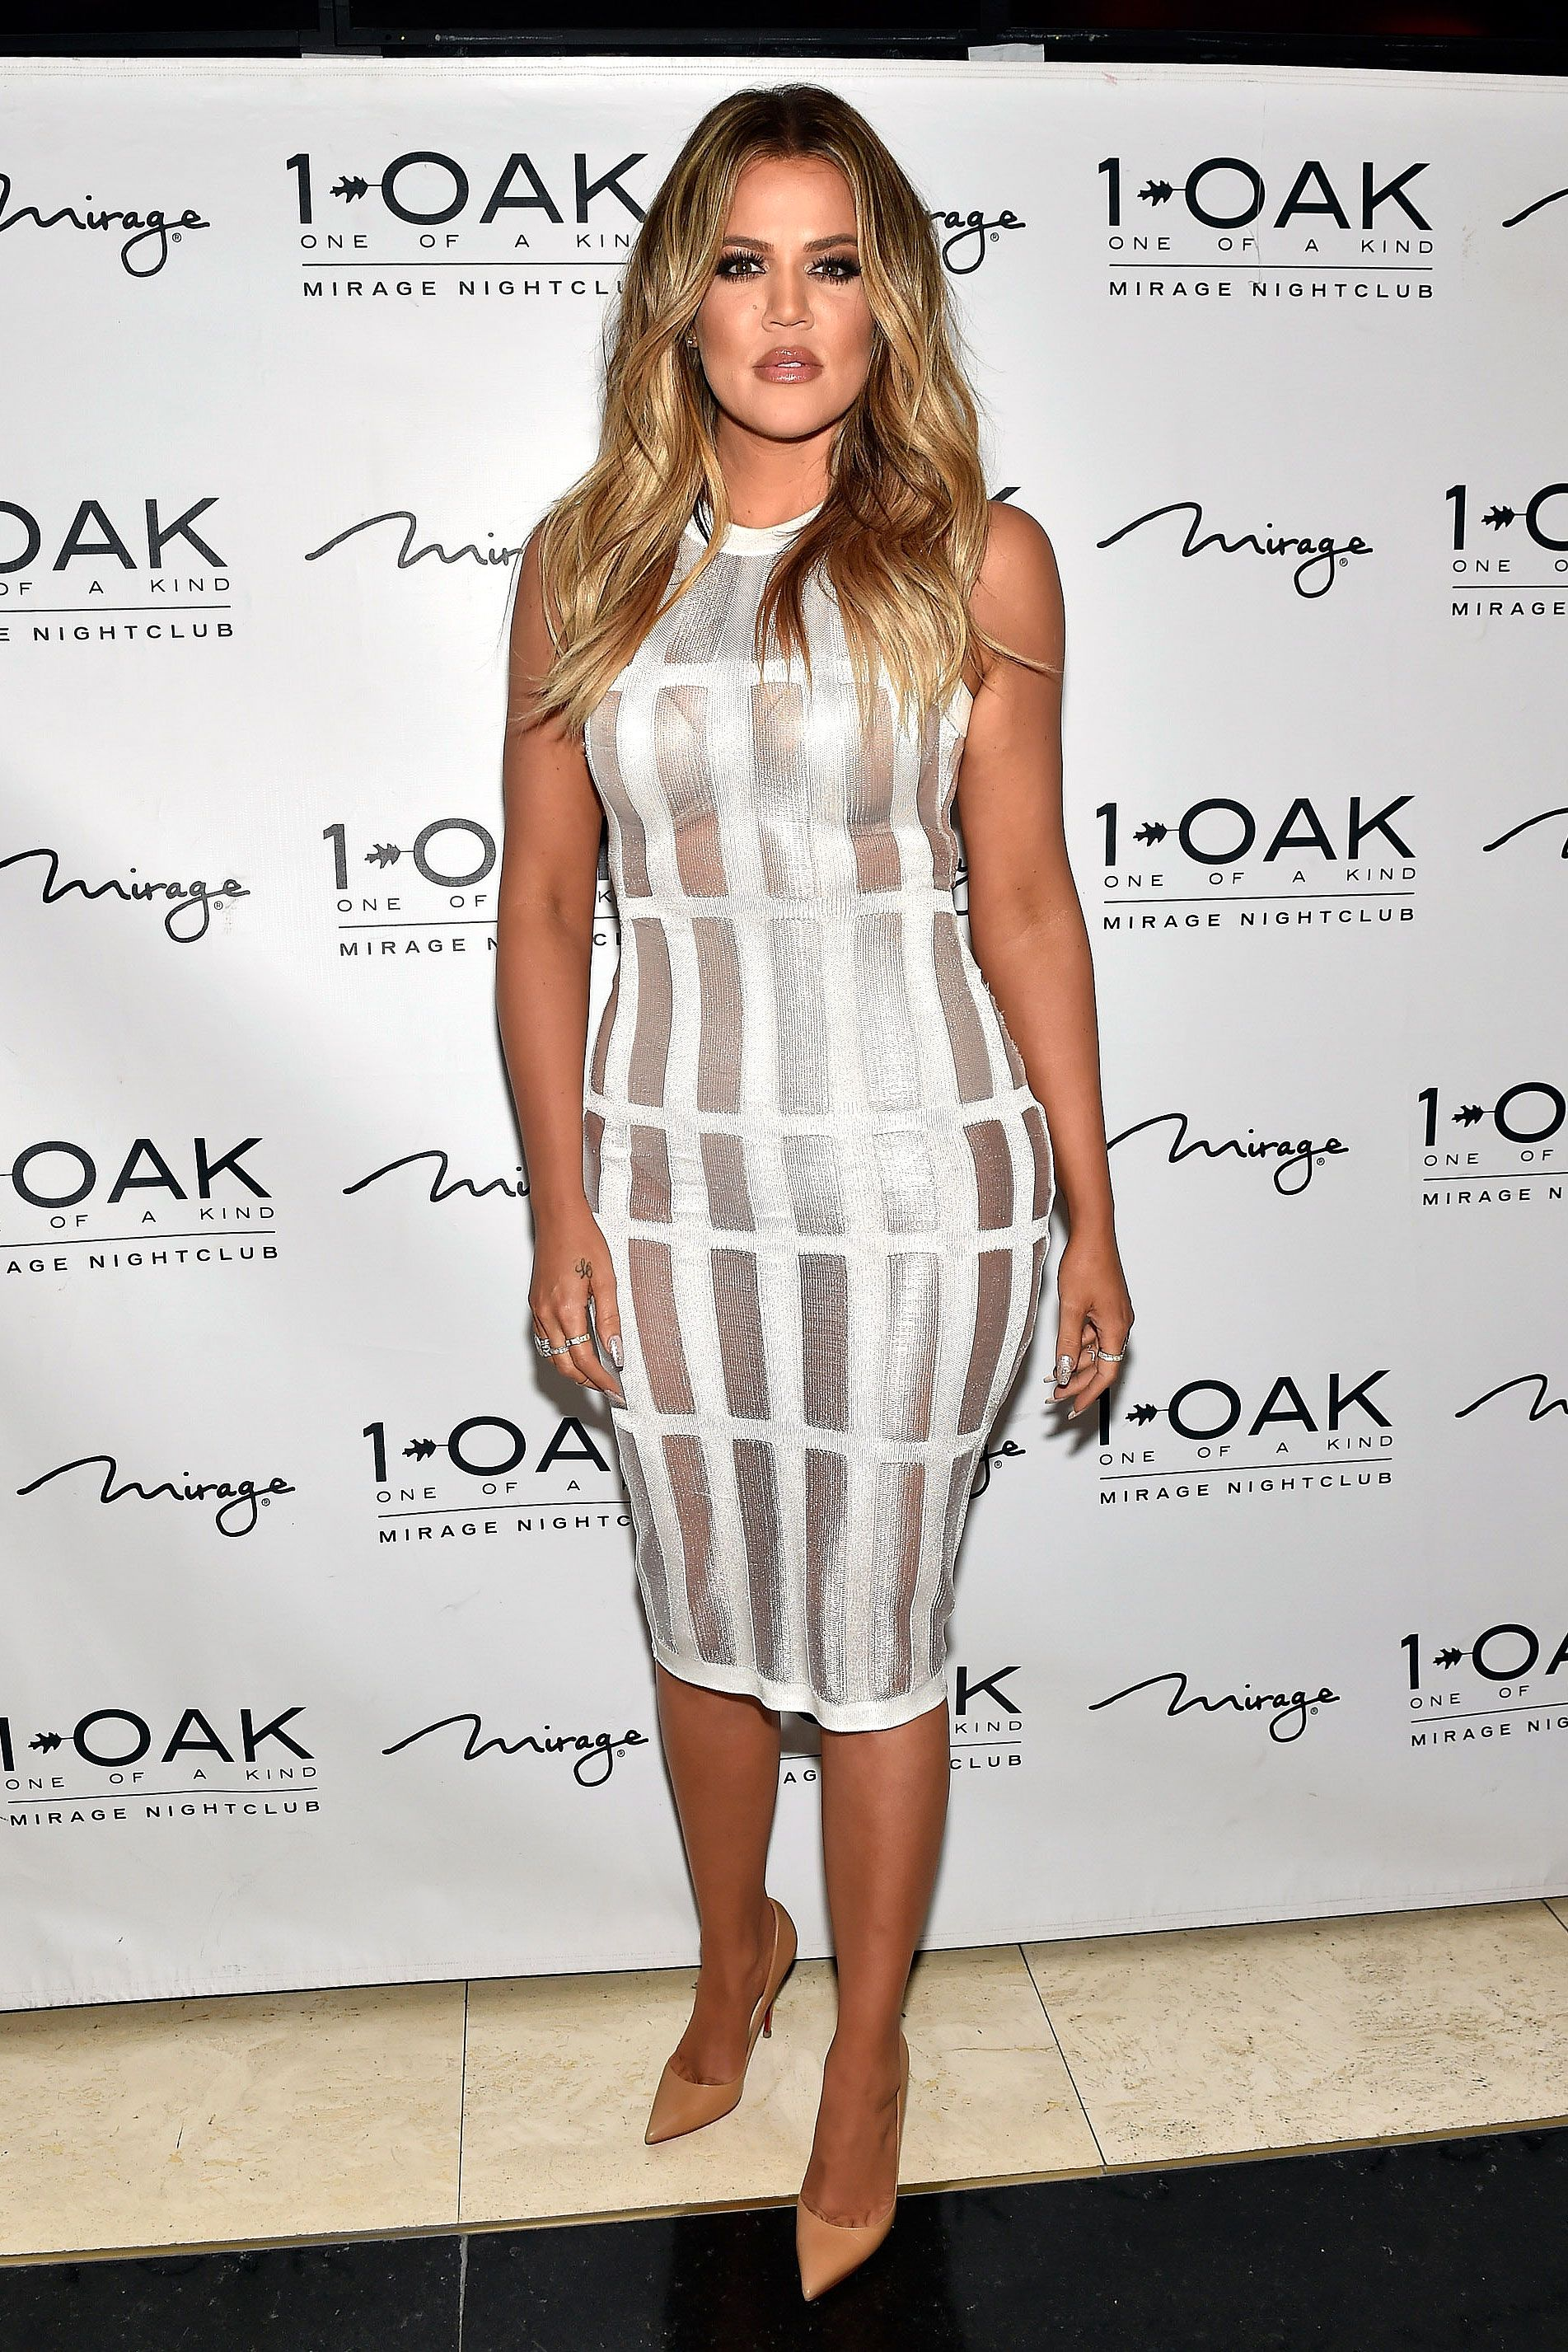 Khloé Kardashian Gets Really Real About How She Lost 13 Pounds